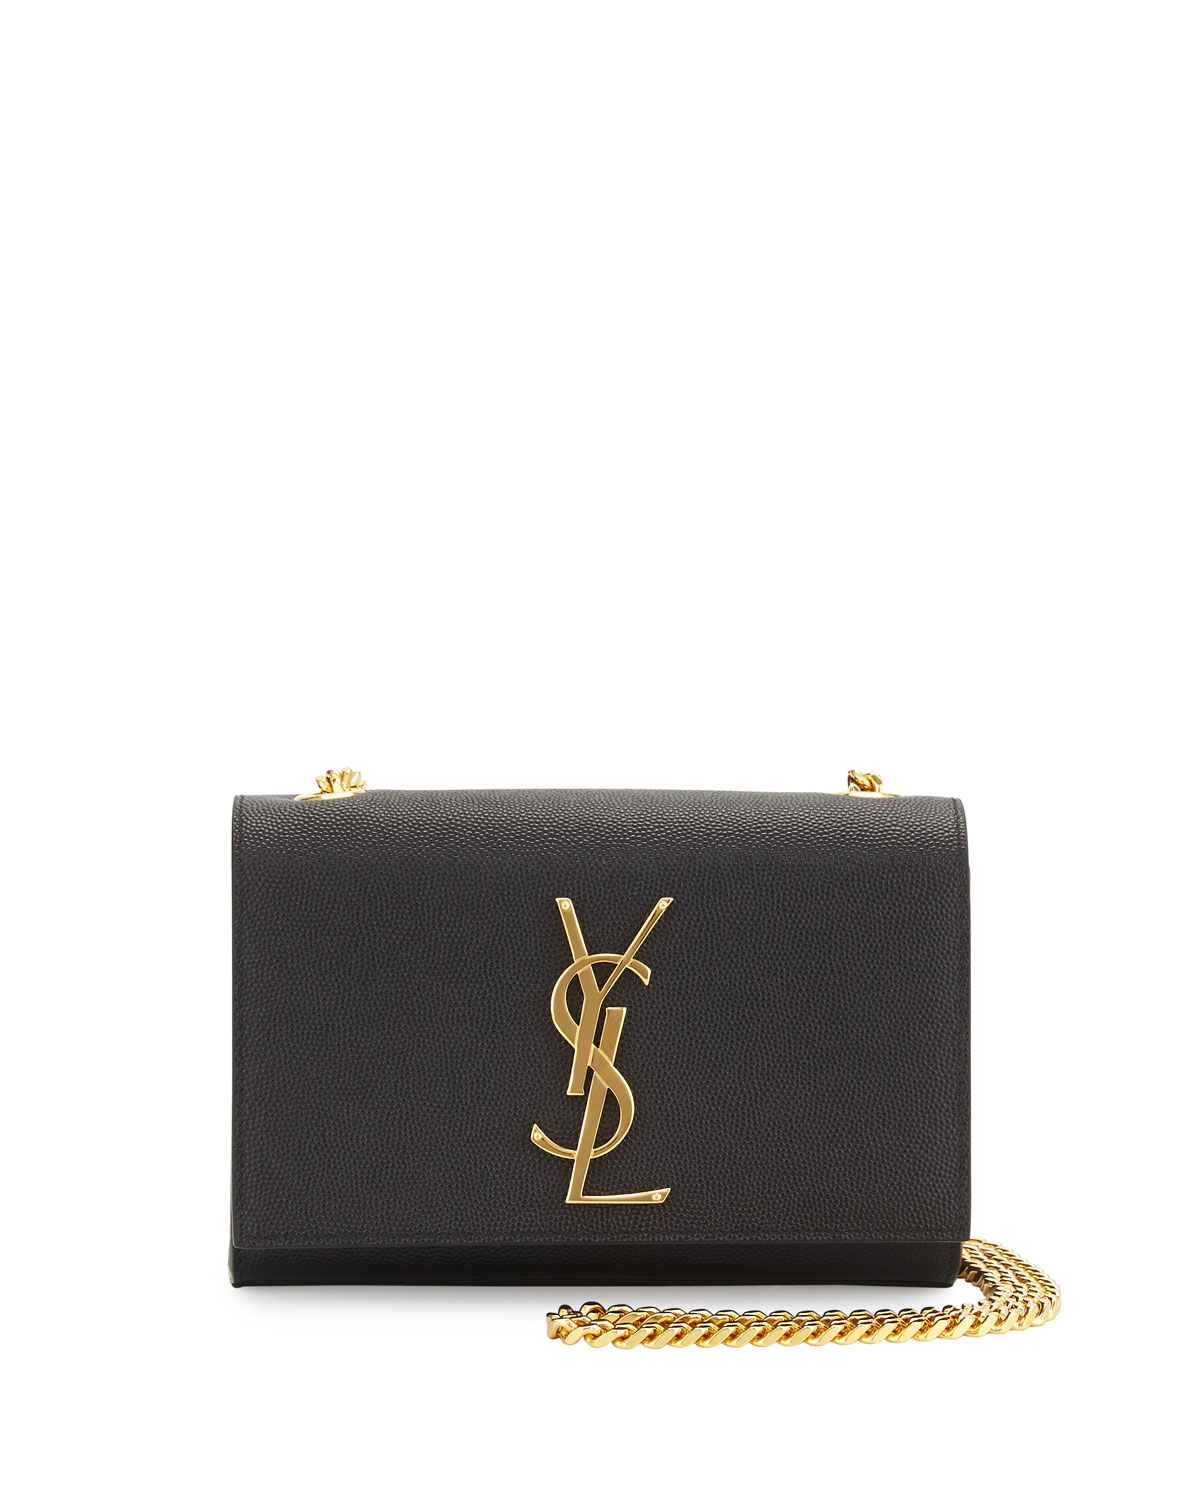 410febf7ff14 Saint Laurent Kate Monogram YSL Leather Crossbody Bag